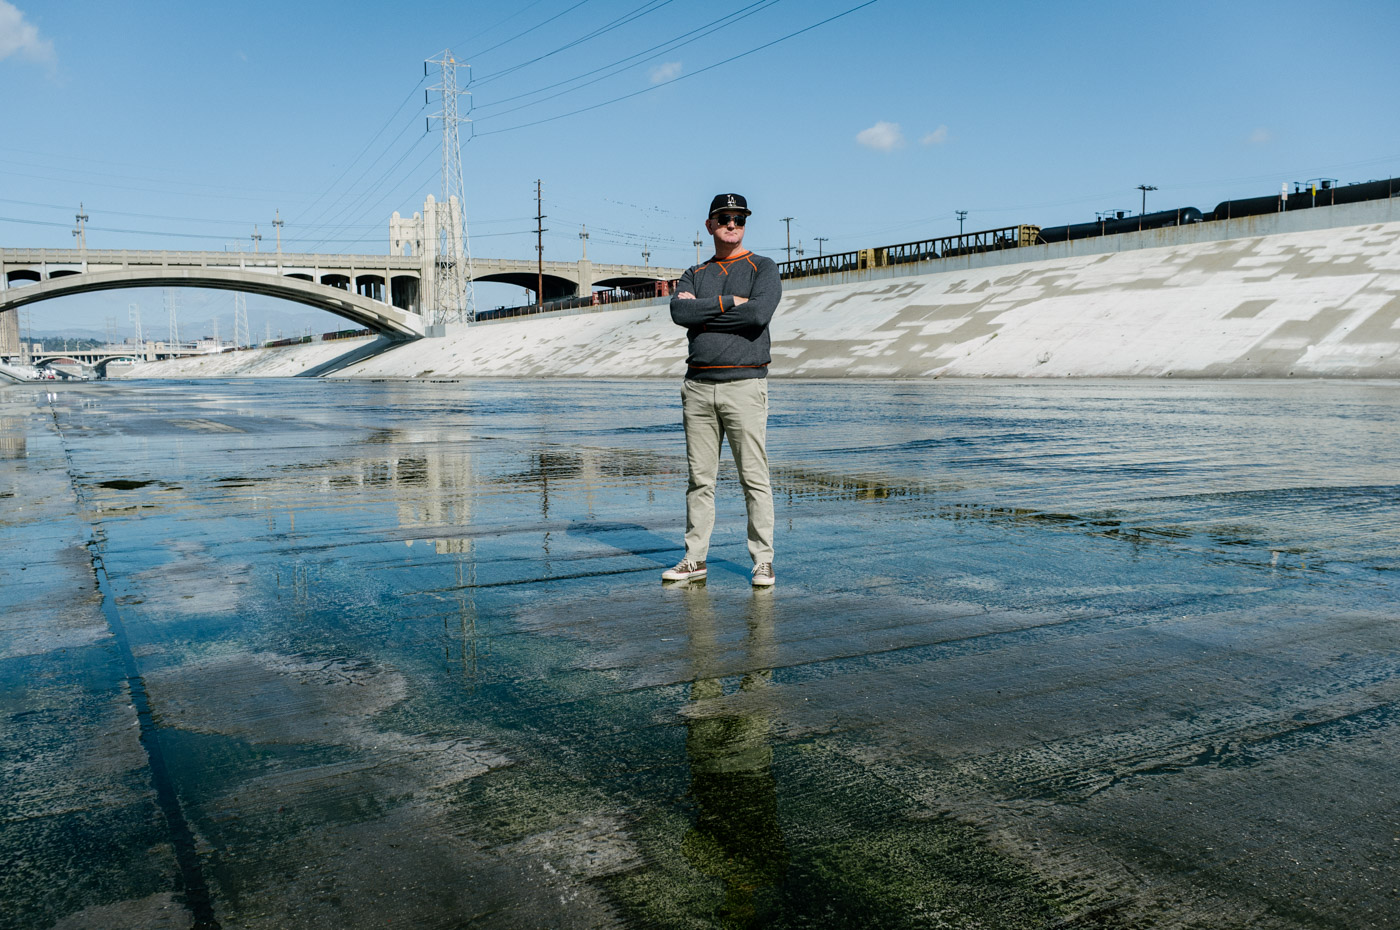 Steve hanging tough in the L.A. River - Let's Photo Trip L.A. River